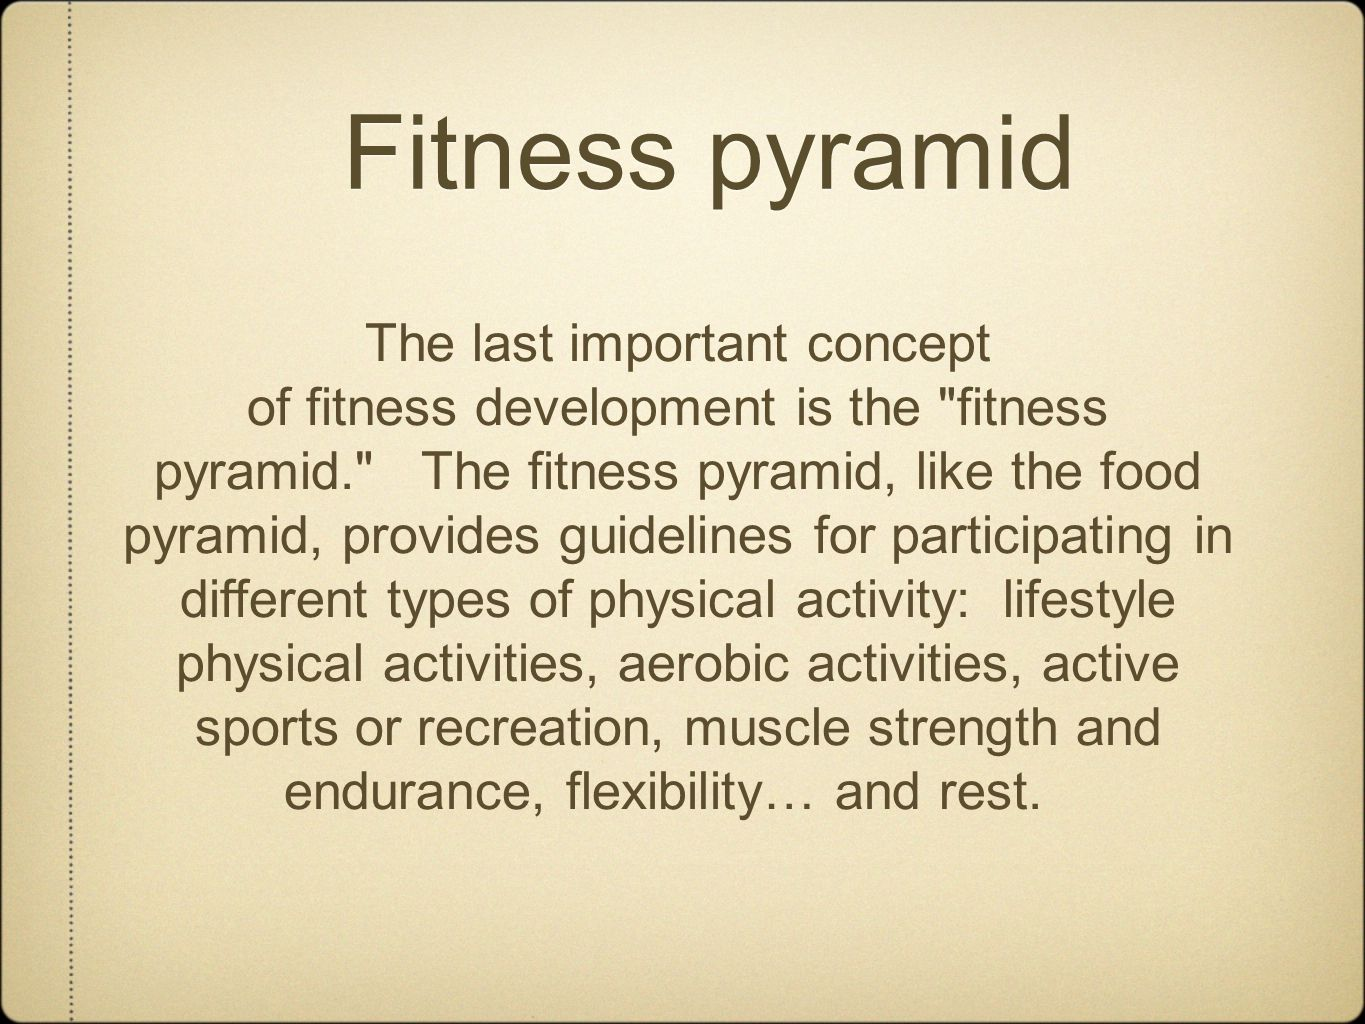 Fitness pyramid The last important concept of fitness development is the fitness pyramid. The fitness pyramid, like the food pyramid, provides guidelines for participating in different types of physical activity: lifestyle physical activities, aerobic activities, active sports or recreation, muscle strength and endurance, flexibility… and rest.